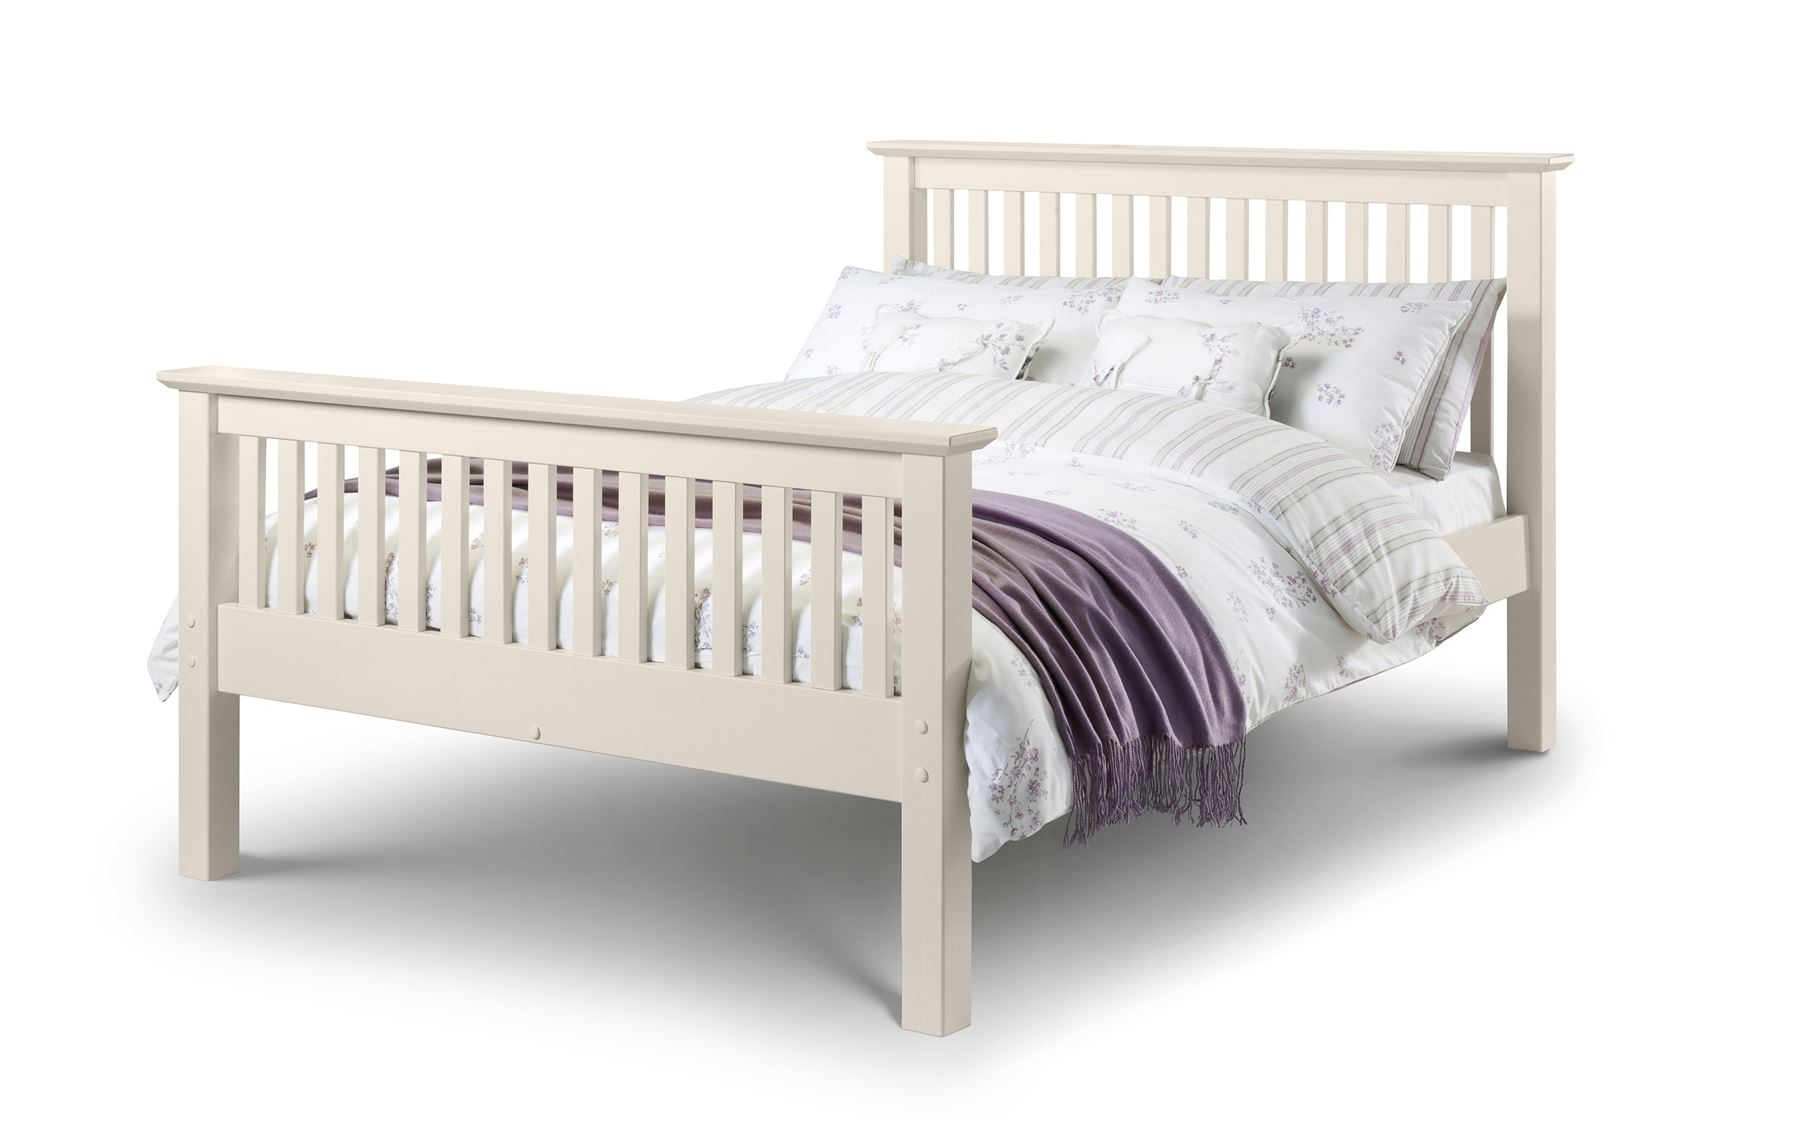 Julian Bowen Barcelona HFE Solid Wood Bed Frame 4FT6 Double 135cm Stone White